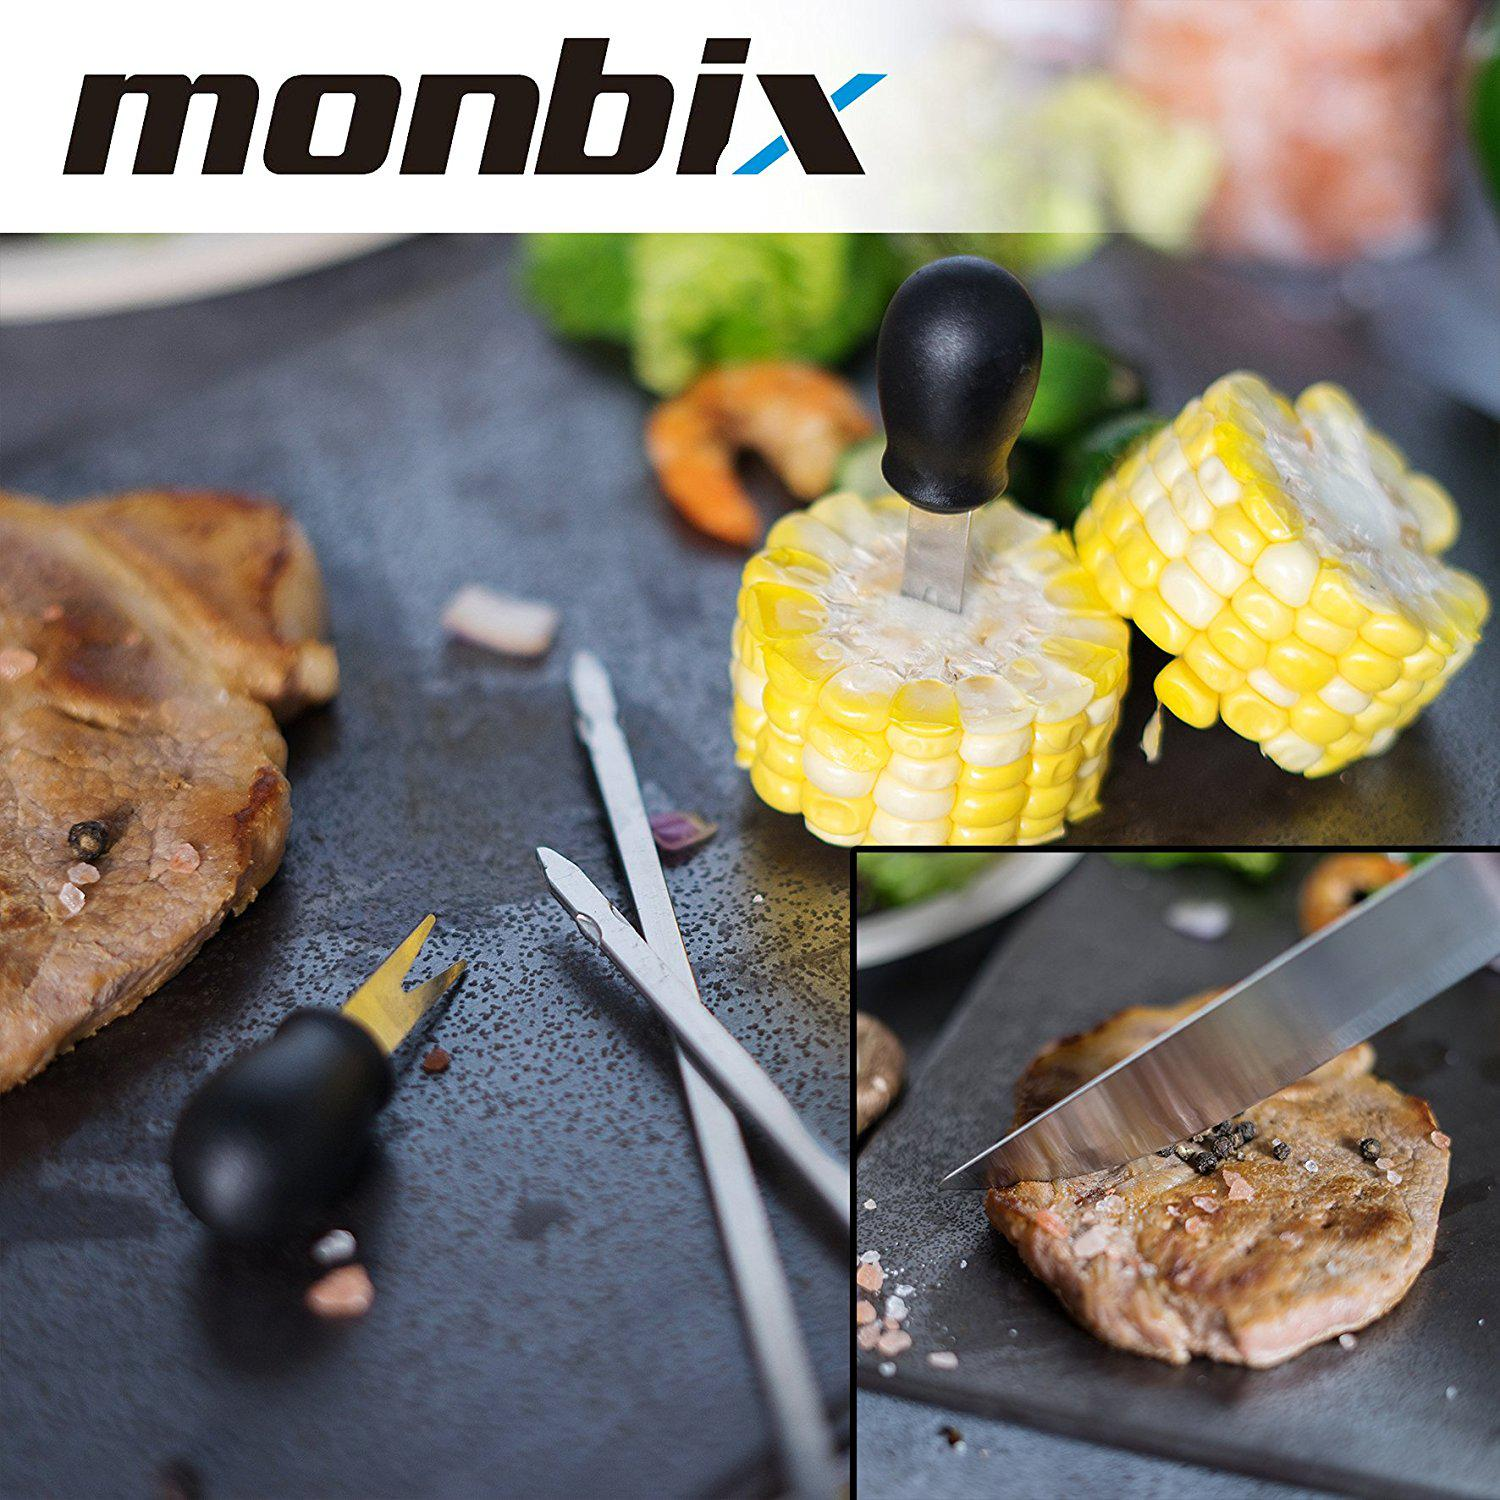 monbix bbq grill accessories 19 pieces best offer reviews. Black Bedroom Furniture Sets. Home Design Ideas